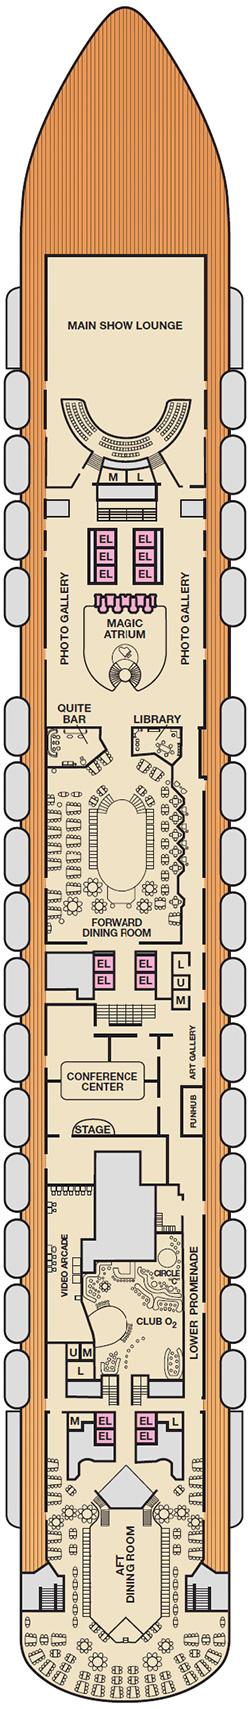 Mezzanine Decking Plans : Carnival breeze mezzanine deck plan monocruise